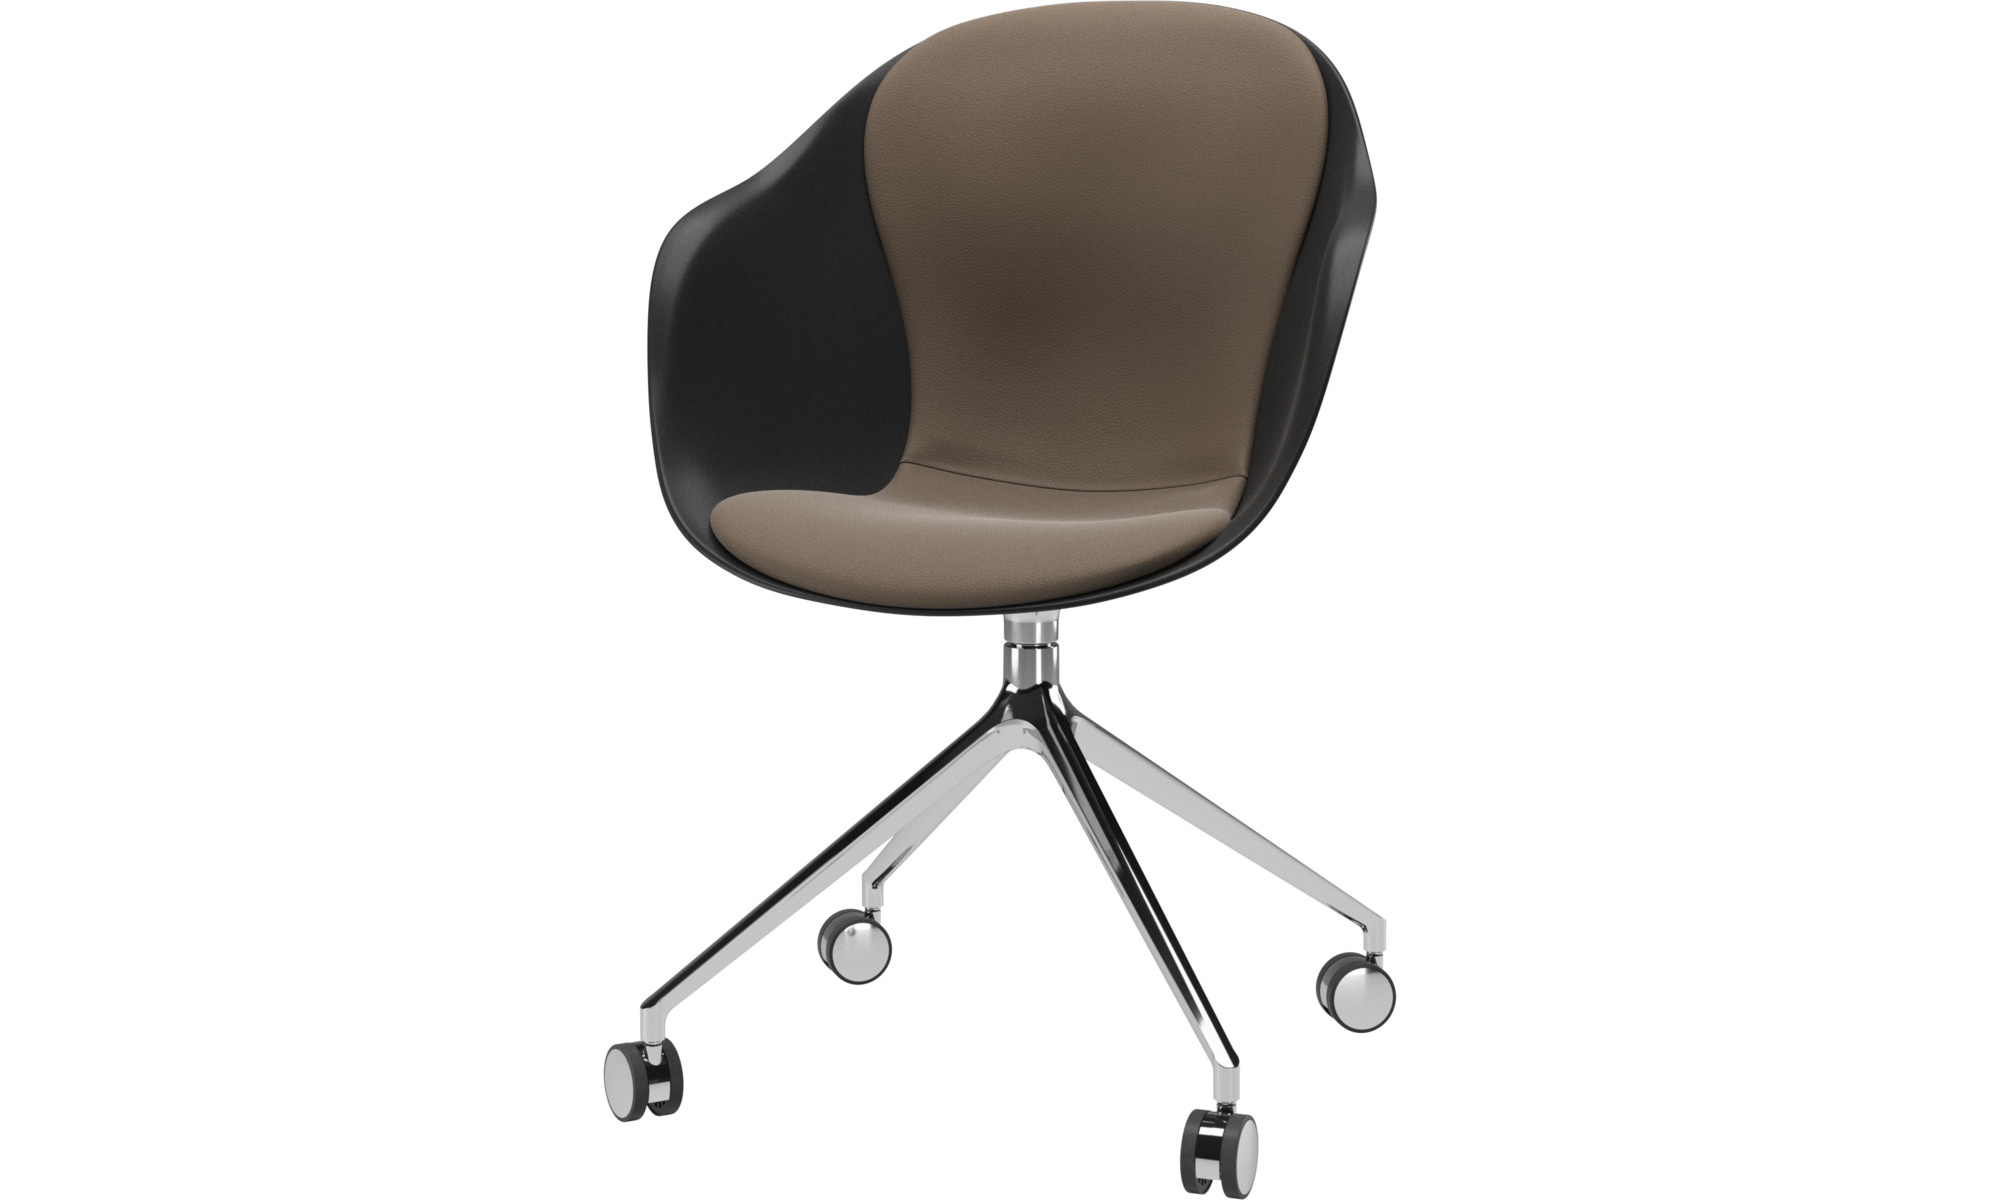 Home office chairs - Adelaide chair with swivel function and wheels - Grey - Leather